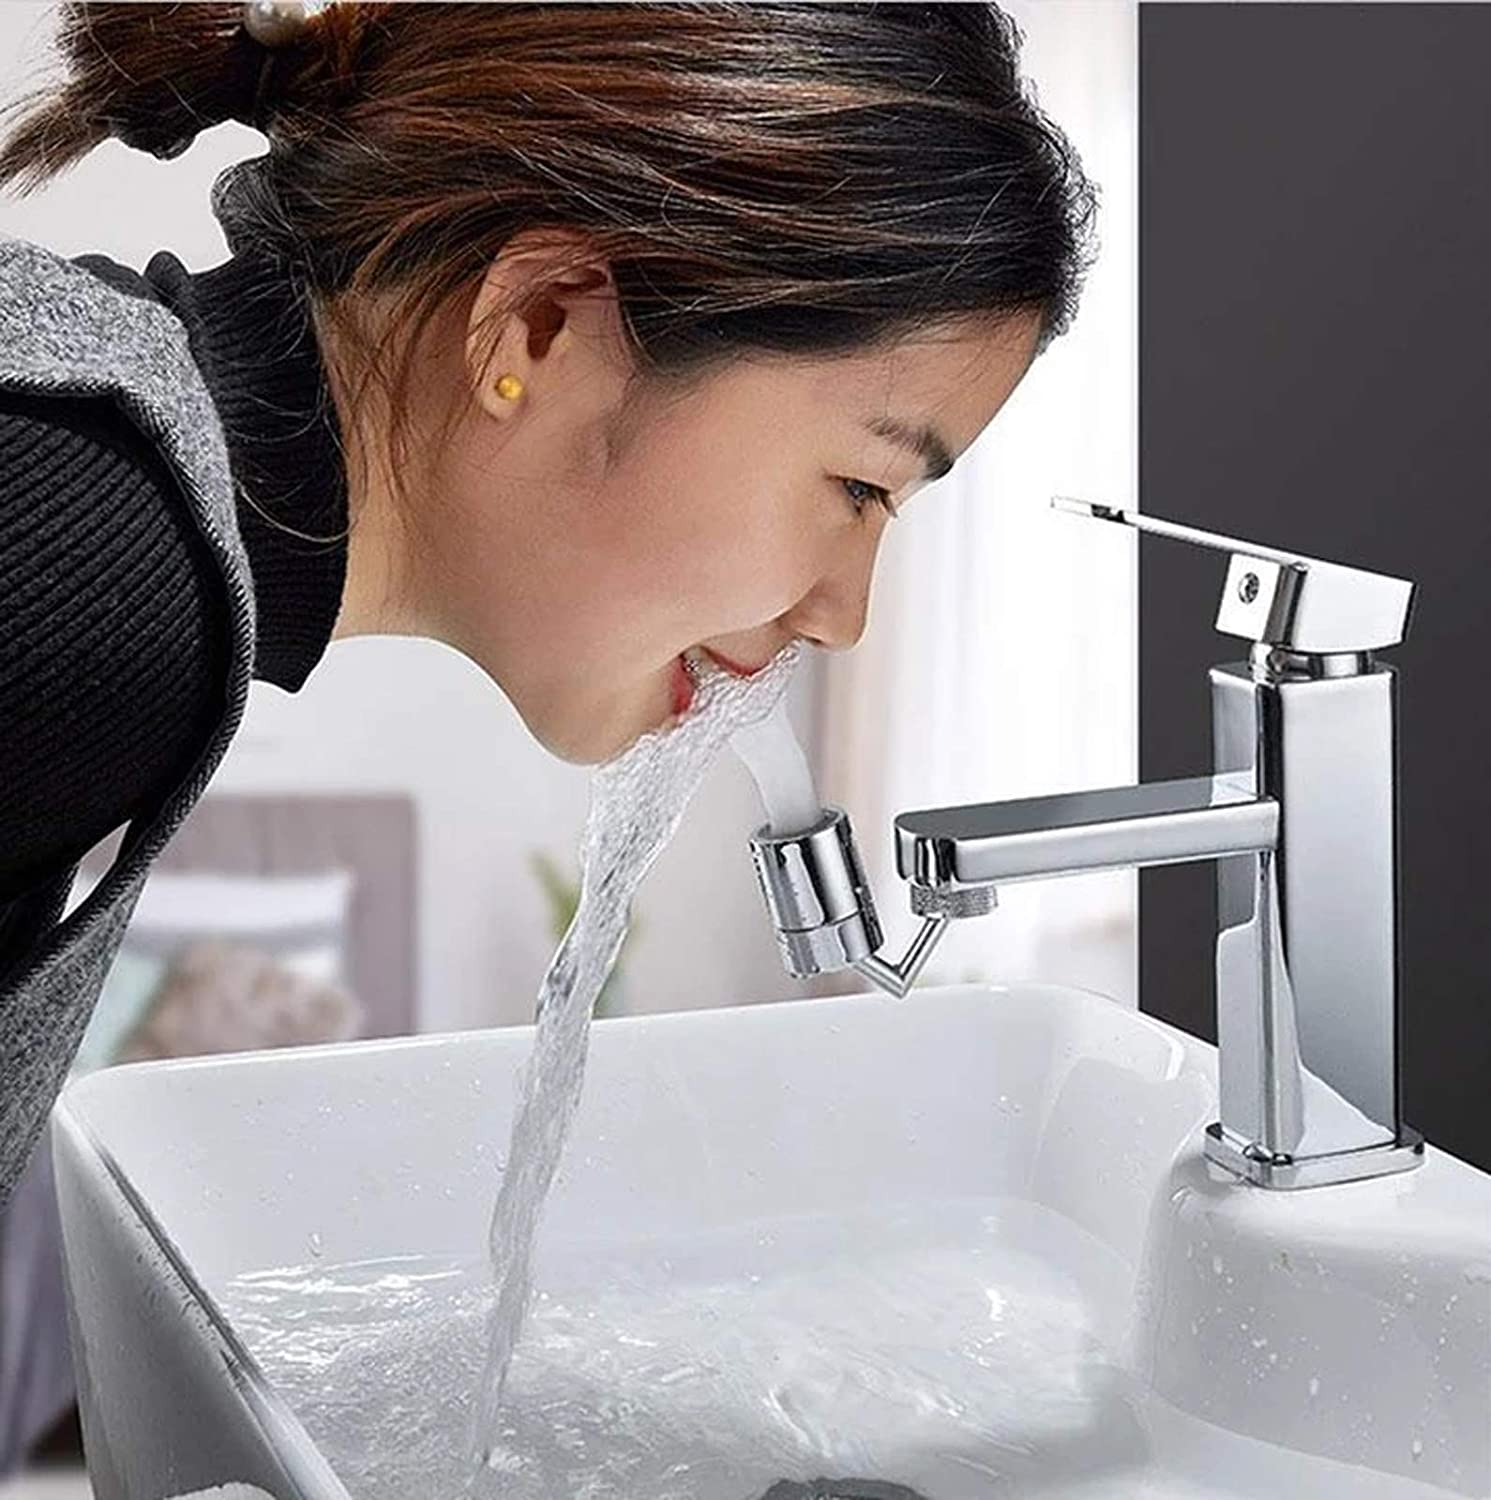 Universal Splash Filter Faucet 720/° Rotatable Faucet Sprayer Head 4-Layer Net Filter Leakproof Design with Double O-Ring Movable Tap Kitchen Faucet Head Anti-Splash